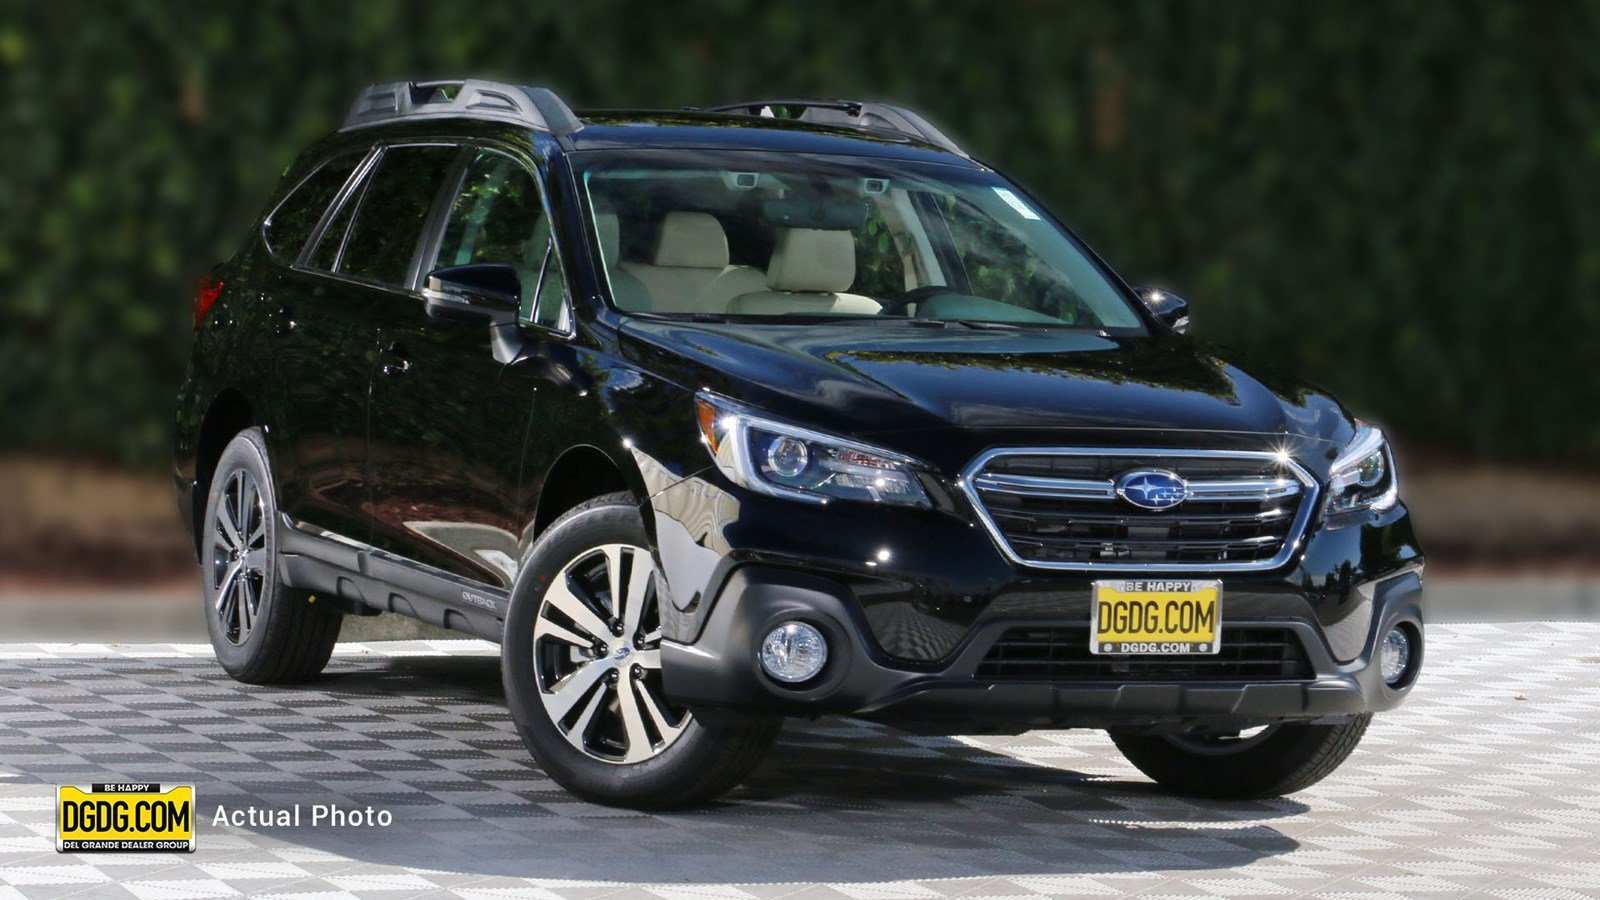 92 Great 2019 Subaru Outback Images by 2019 Subaru Outback